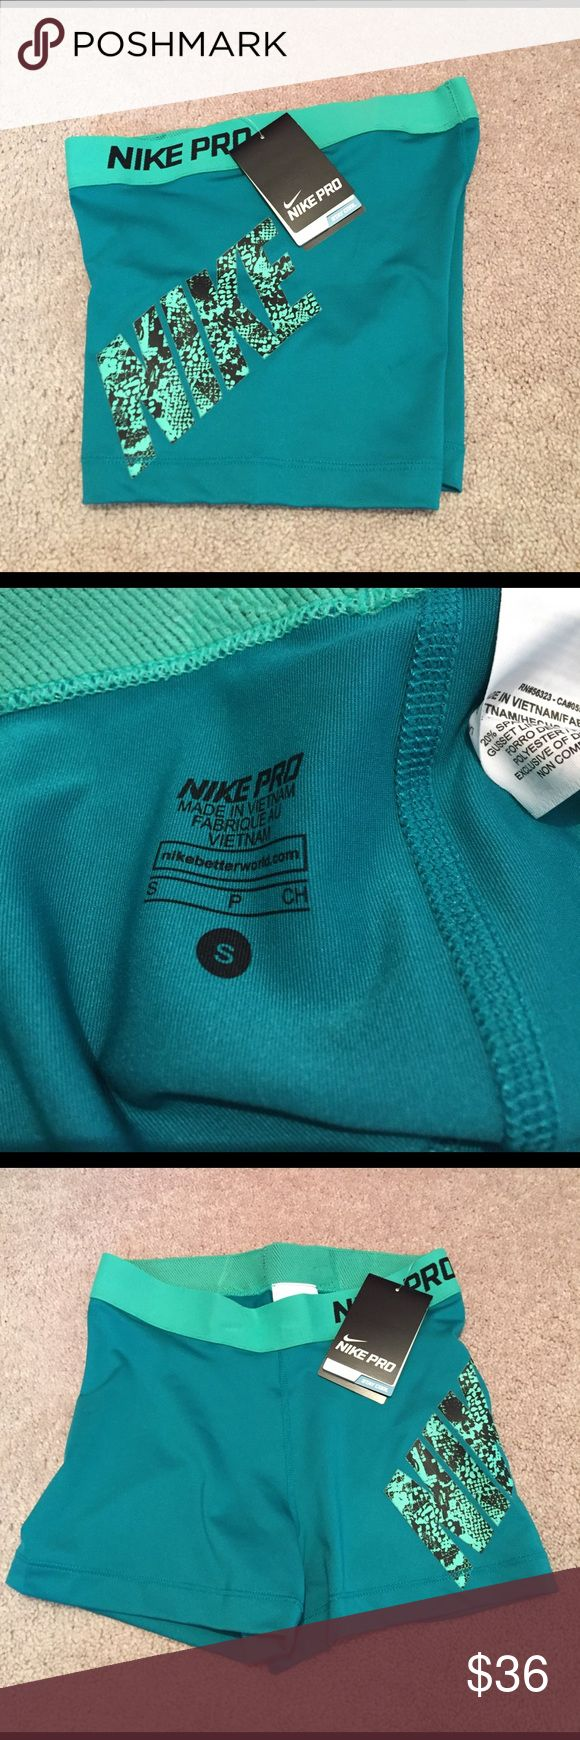 NWT size small Nike pro spandex New with tags size small Nike pro dri-fit spandex shorts. Nike Shorts